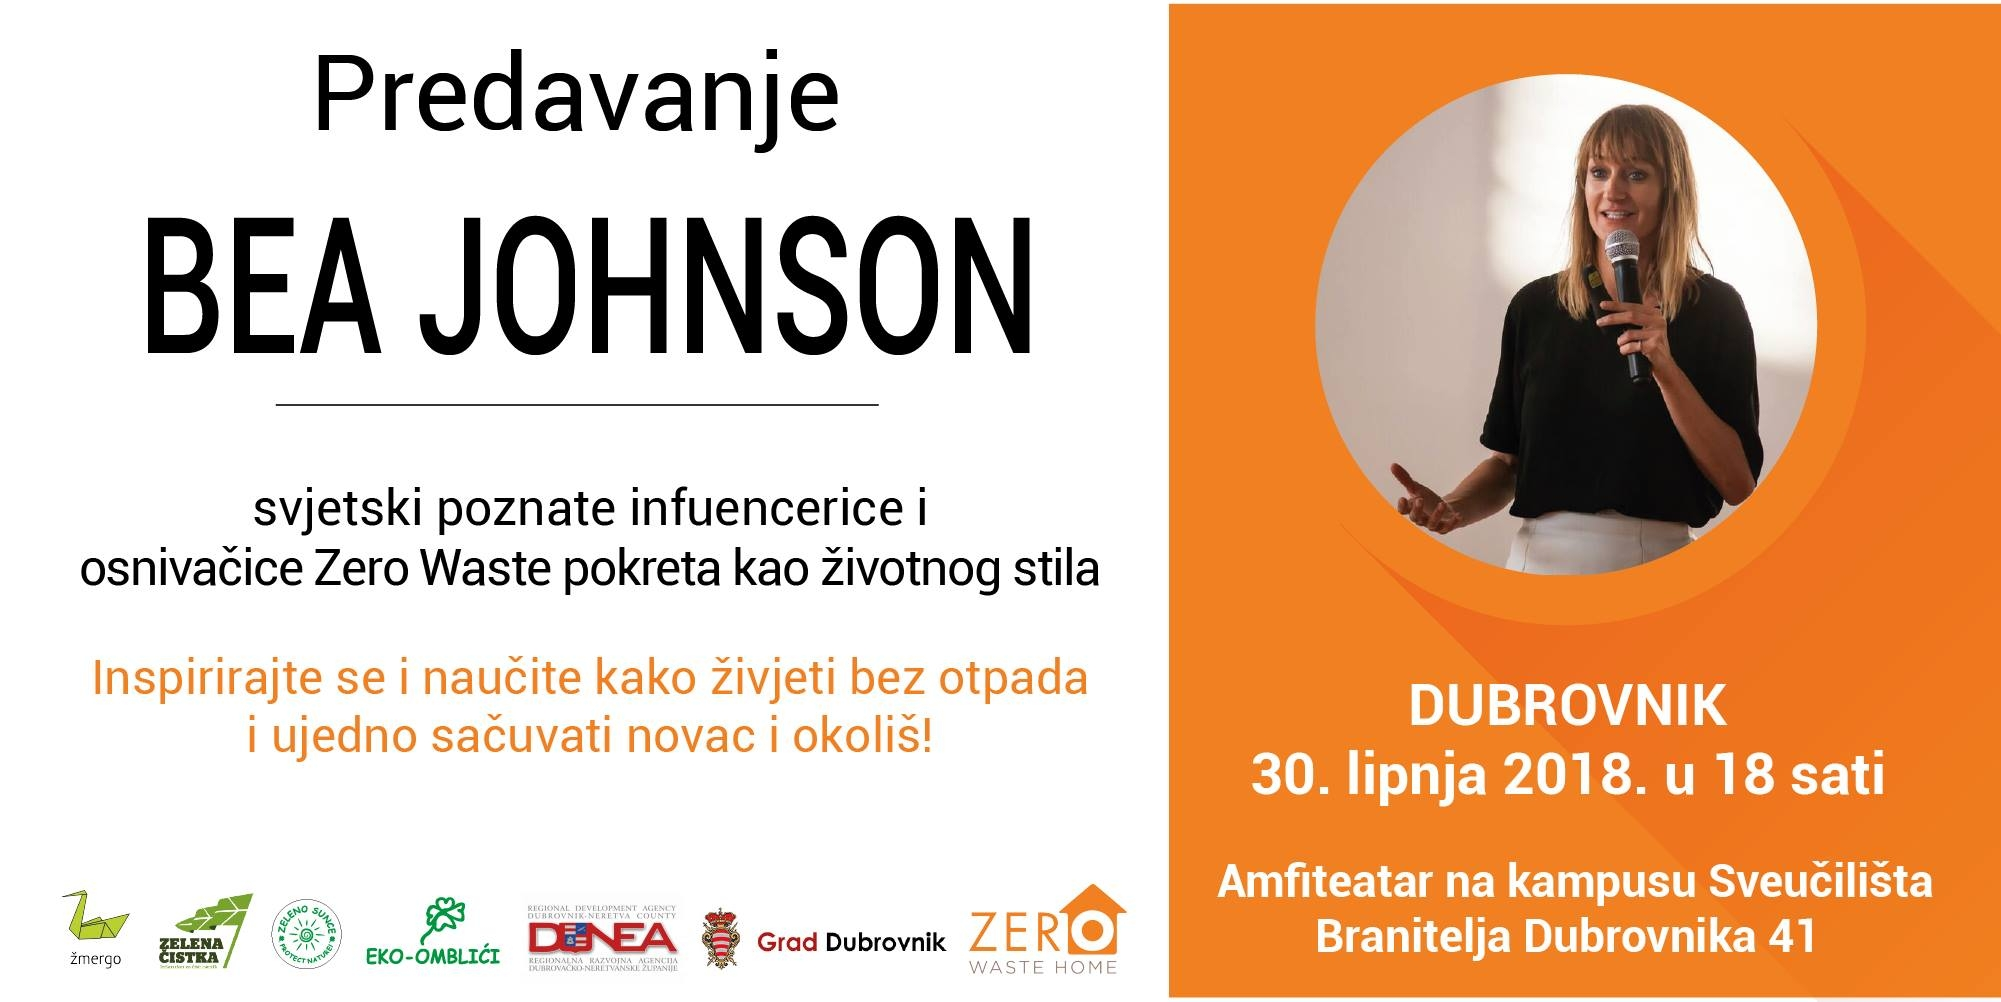 Zero waste home: Bea Johnson u Dubrovniku